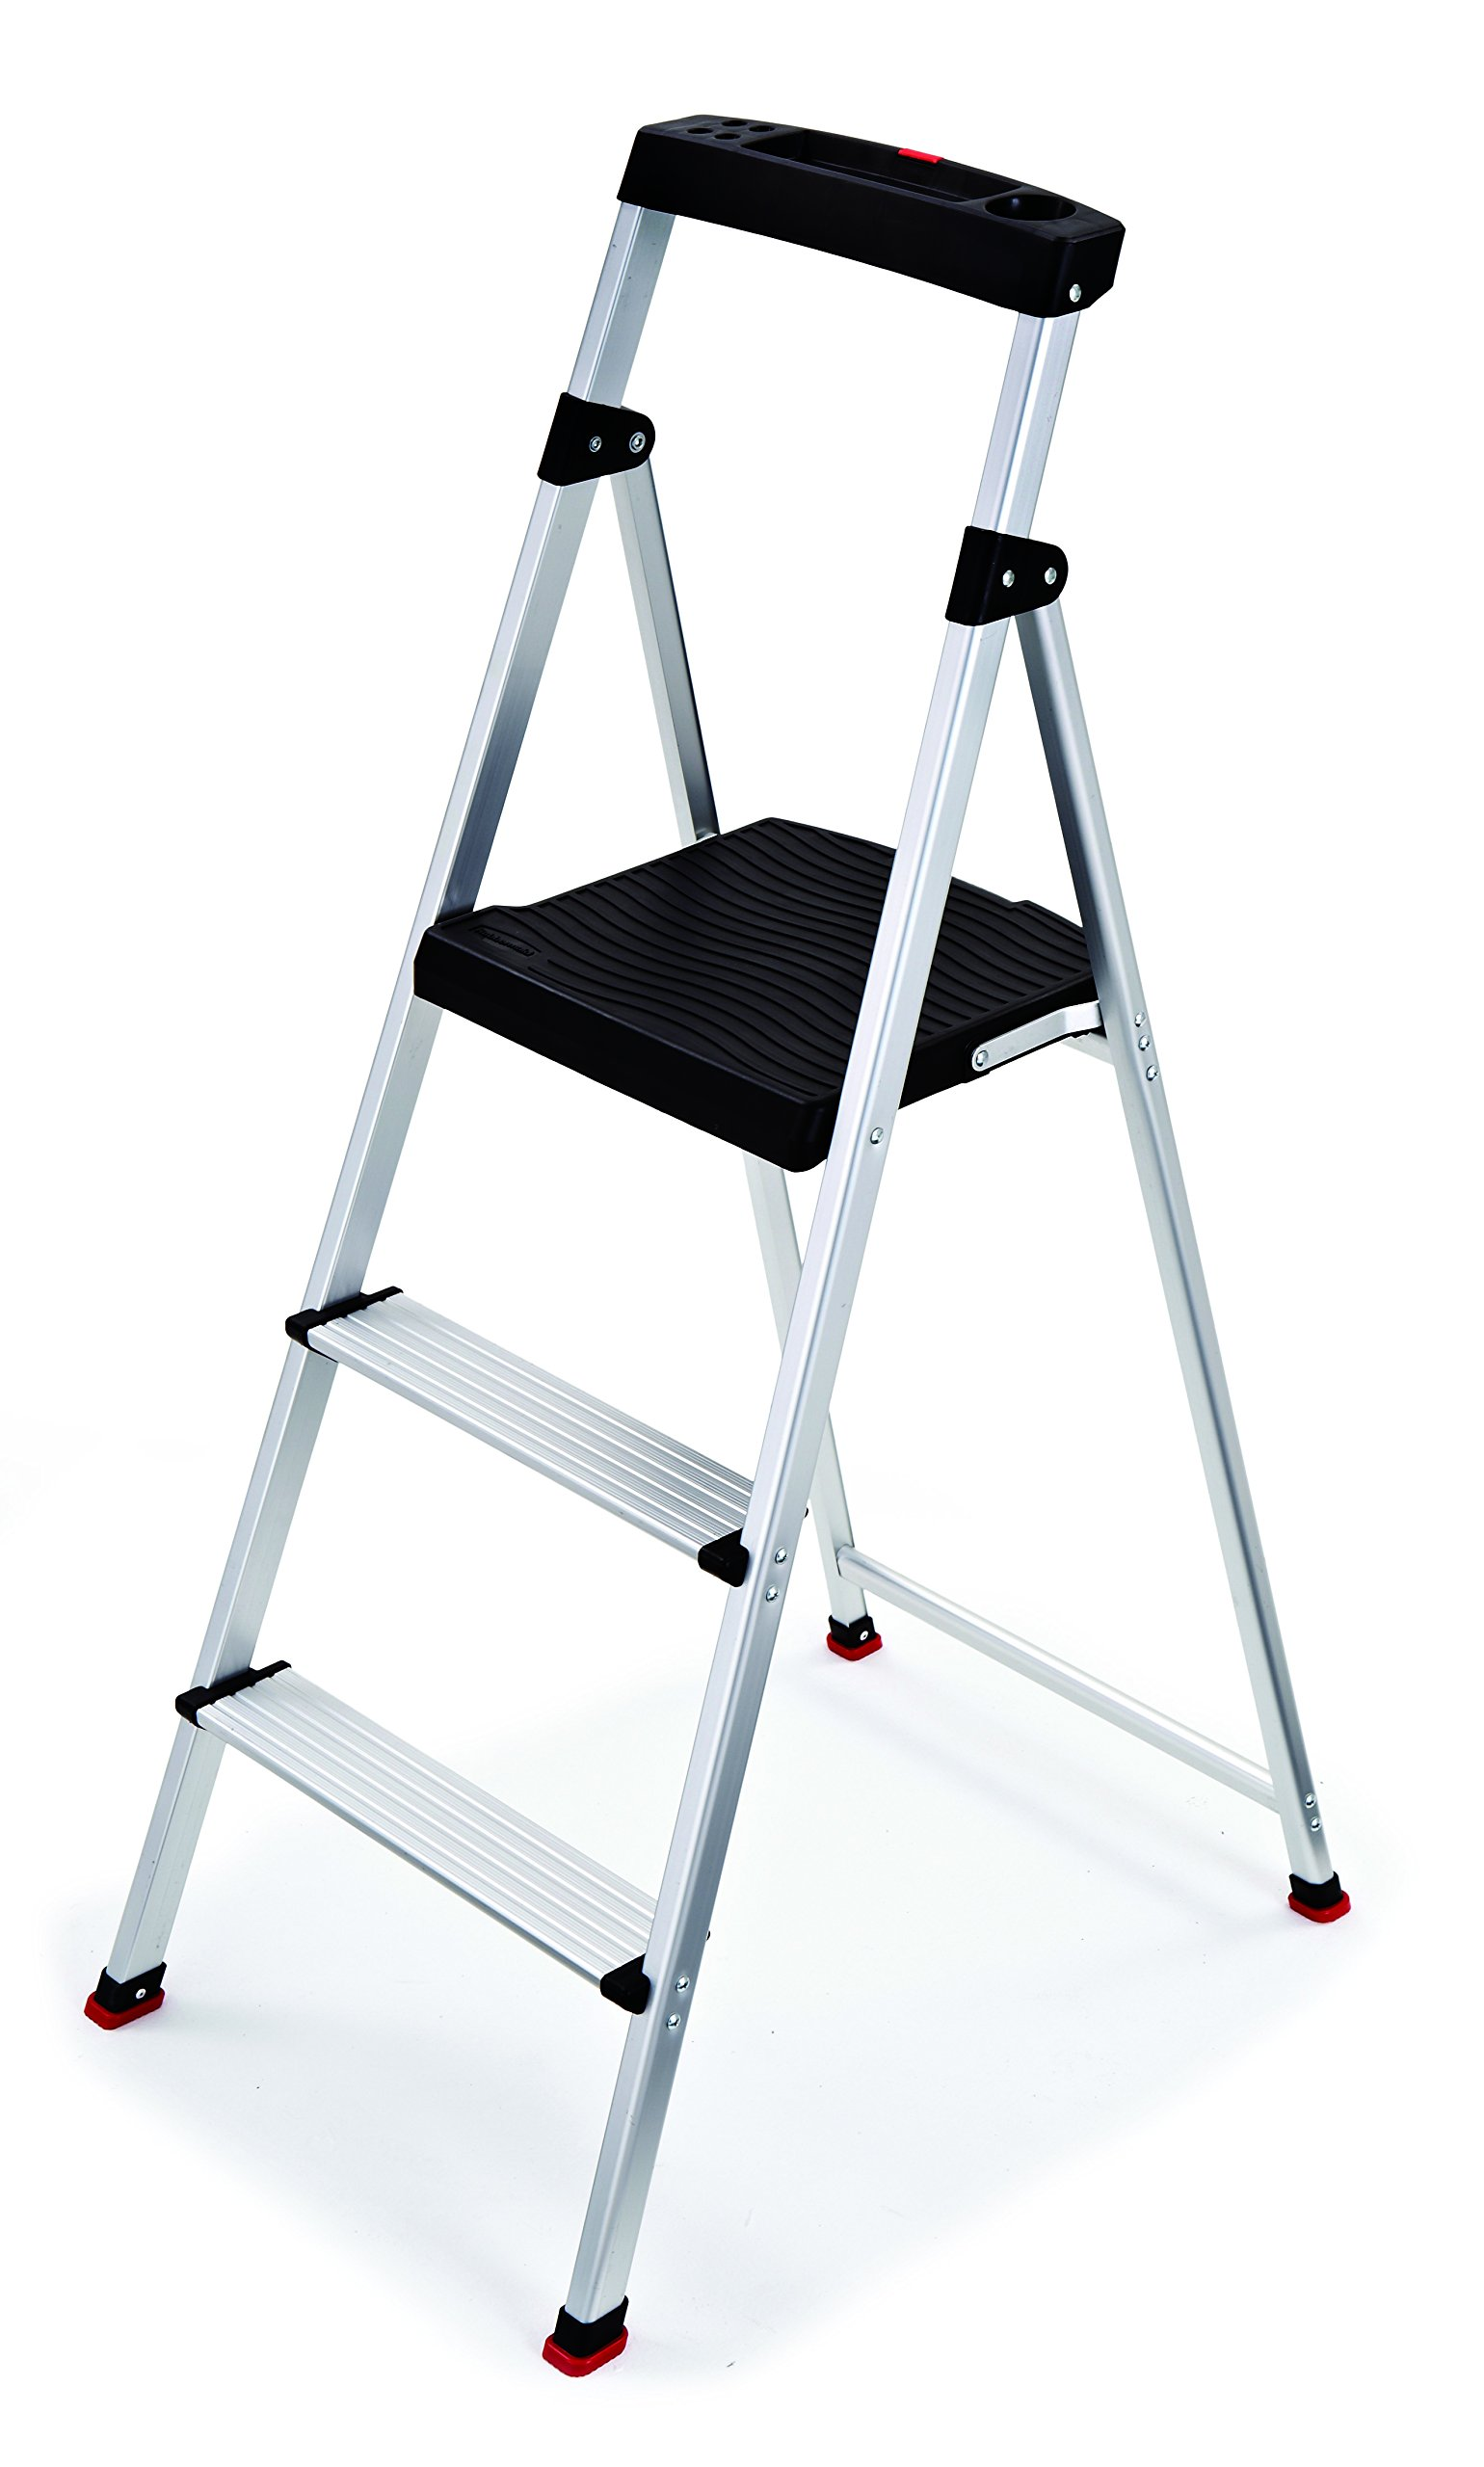 Rubbermaid RMA-3 3 Light Weight Aluminum Step Stool with Project Top, Silver